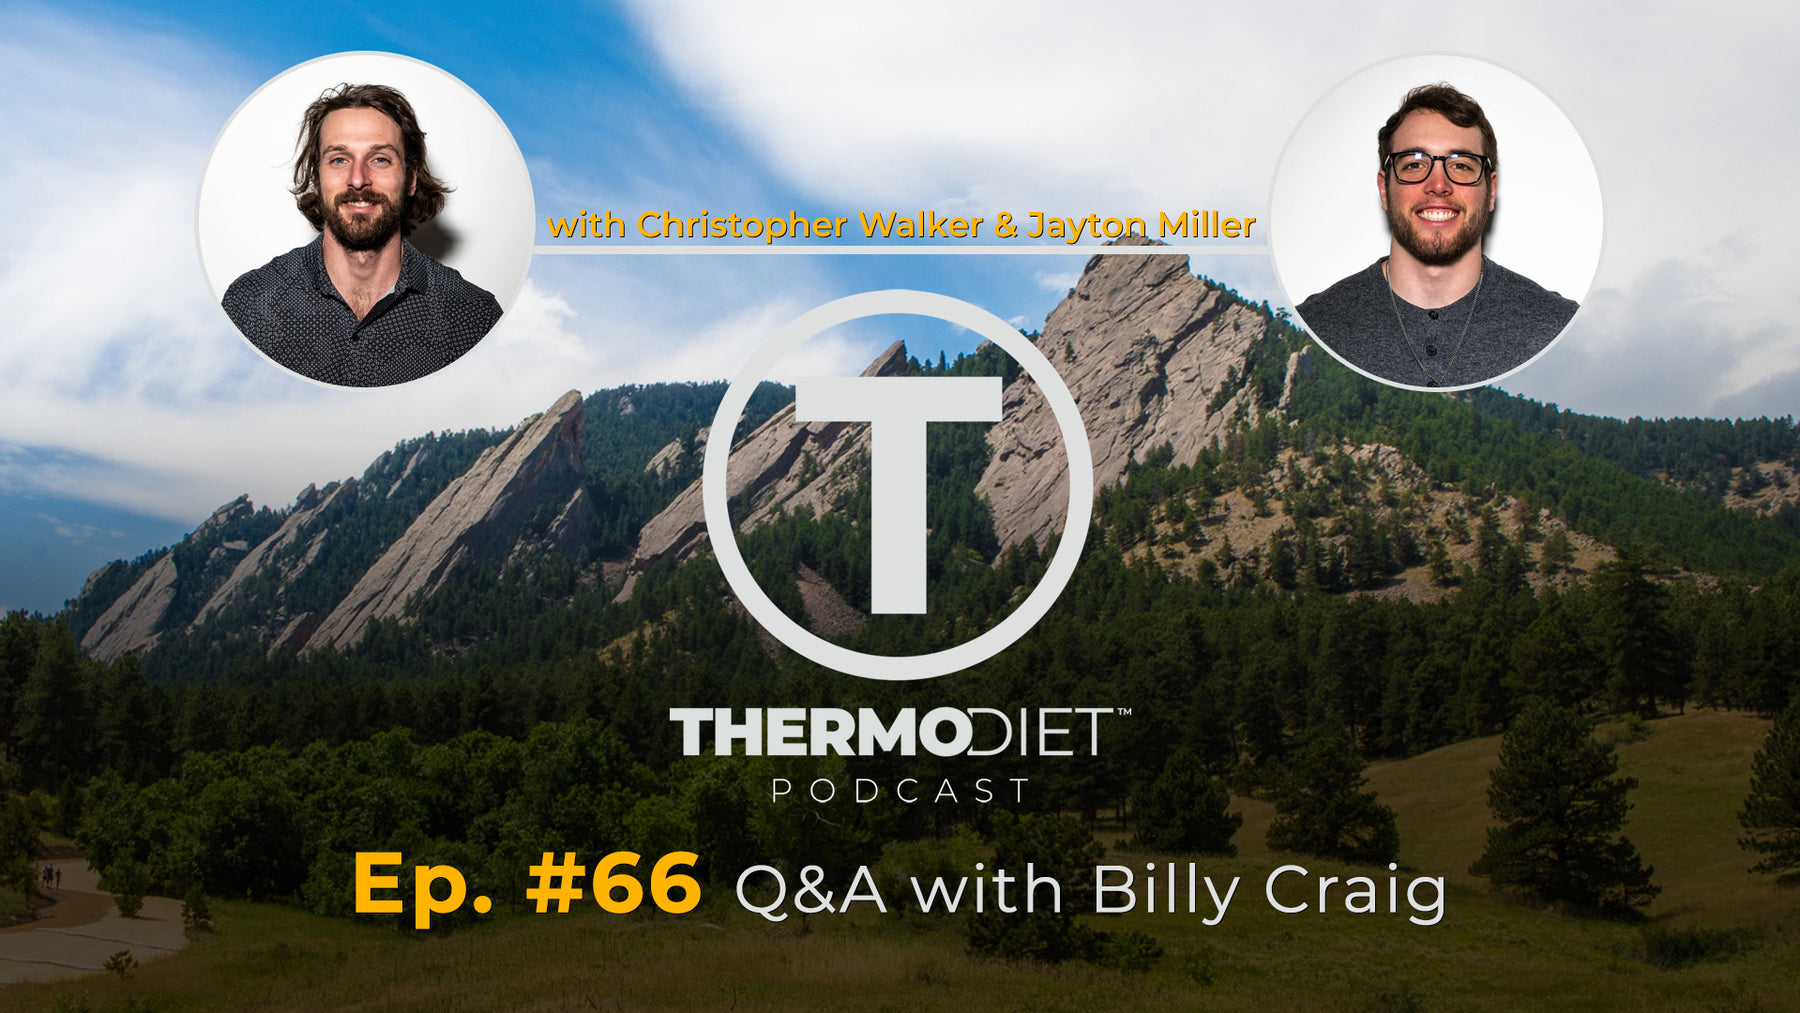 The Thermo Diet Podcast Episode 66 - Billy Craig